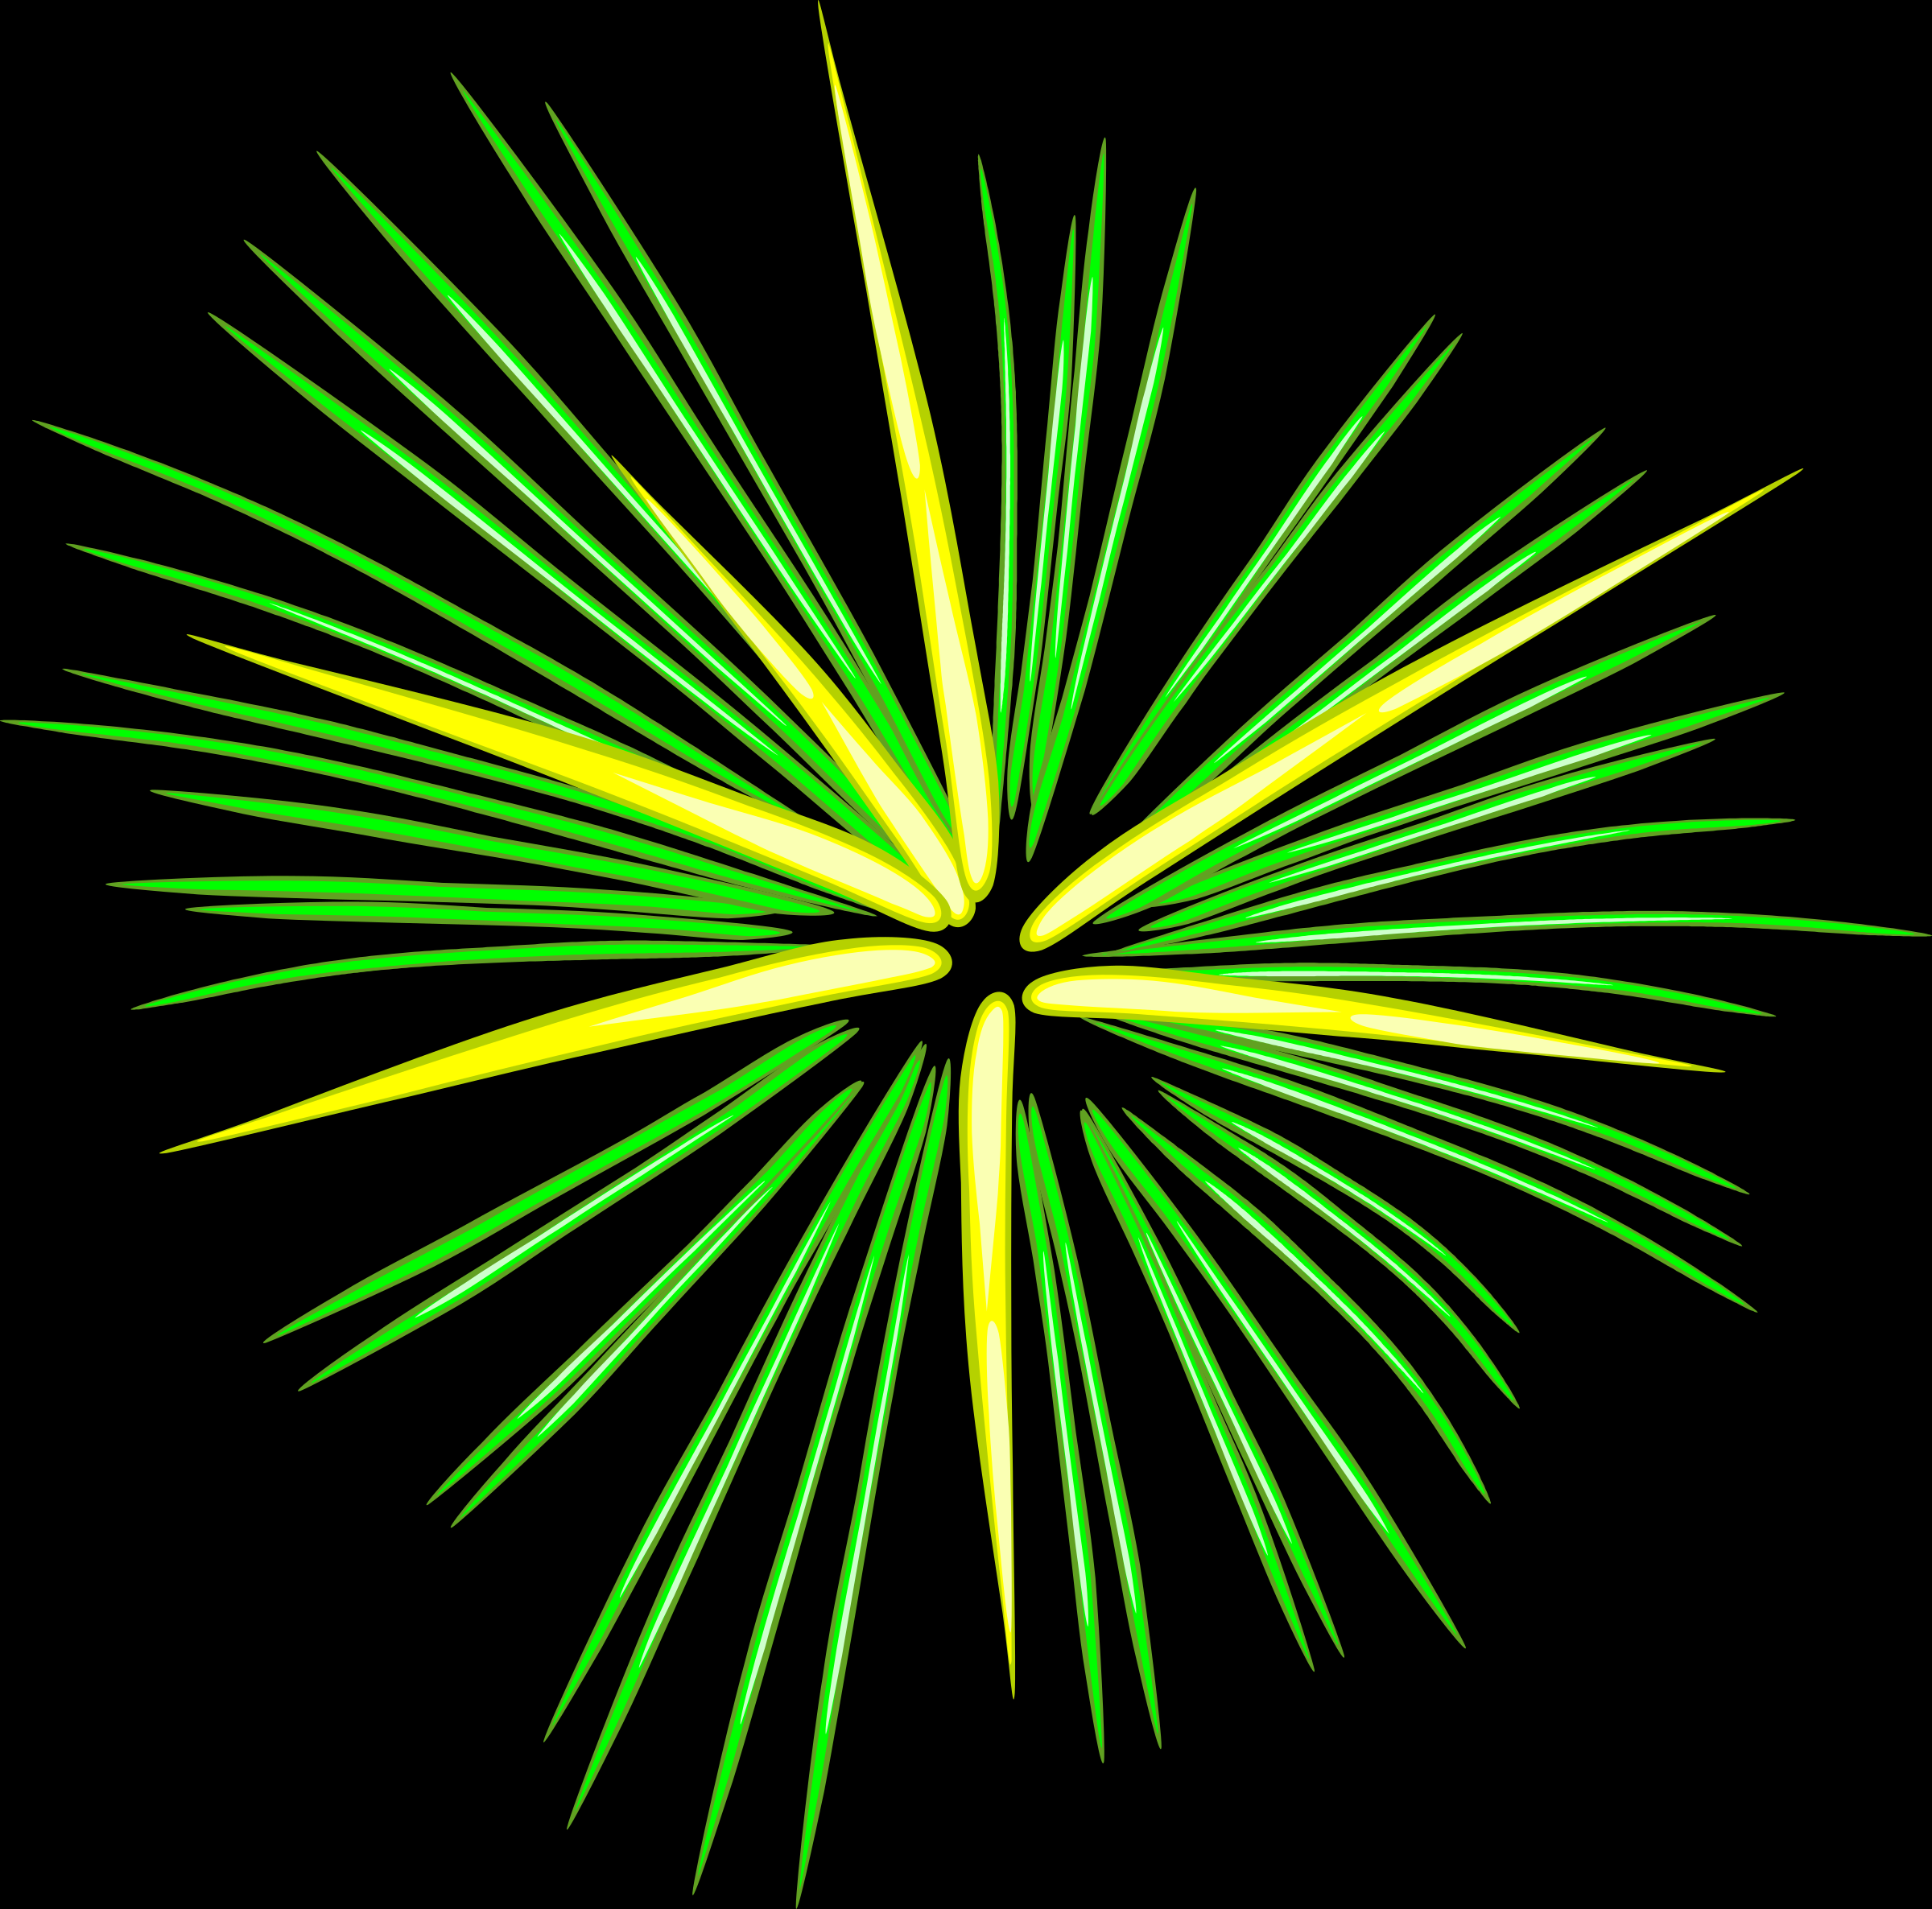 Green Fireworks by eady